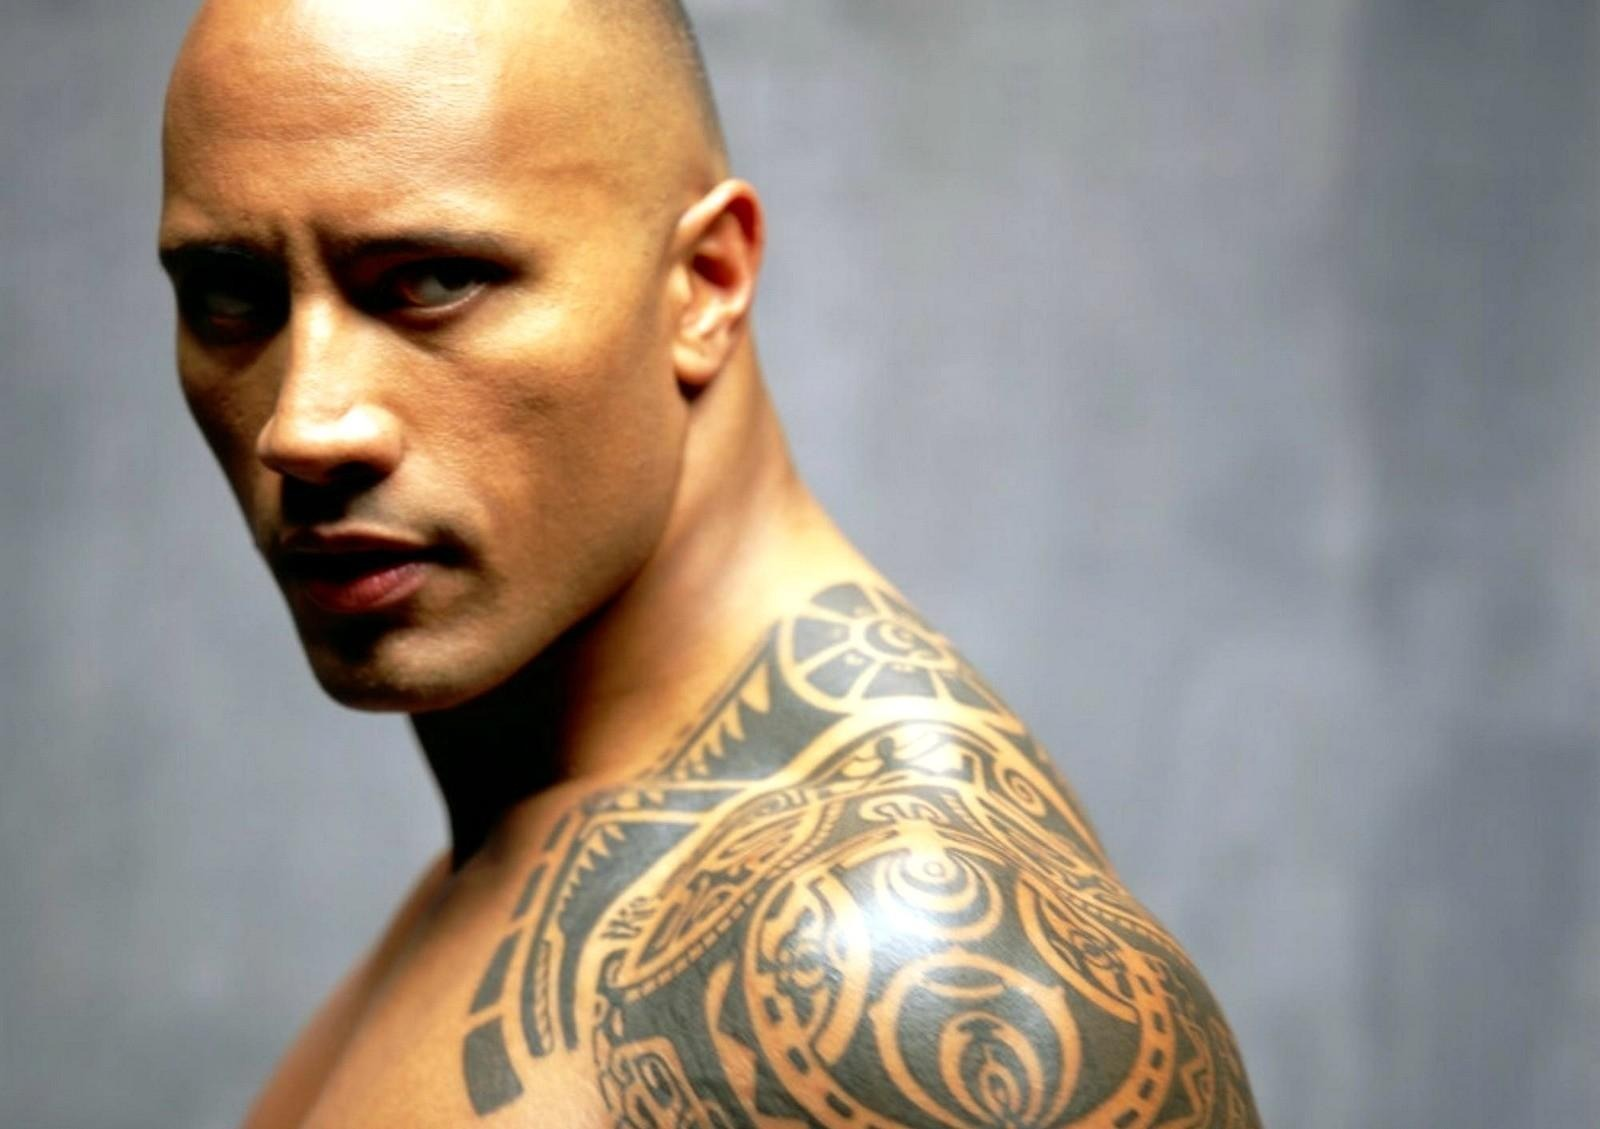 Images Of Dwayne The Rock Johnson: Dwayne Johnson : About Dwayne Johnson Tattoo Meaning